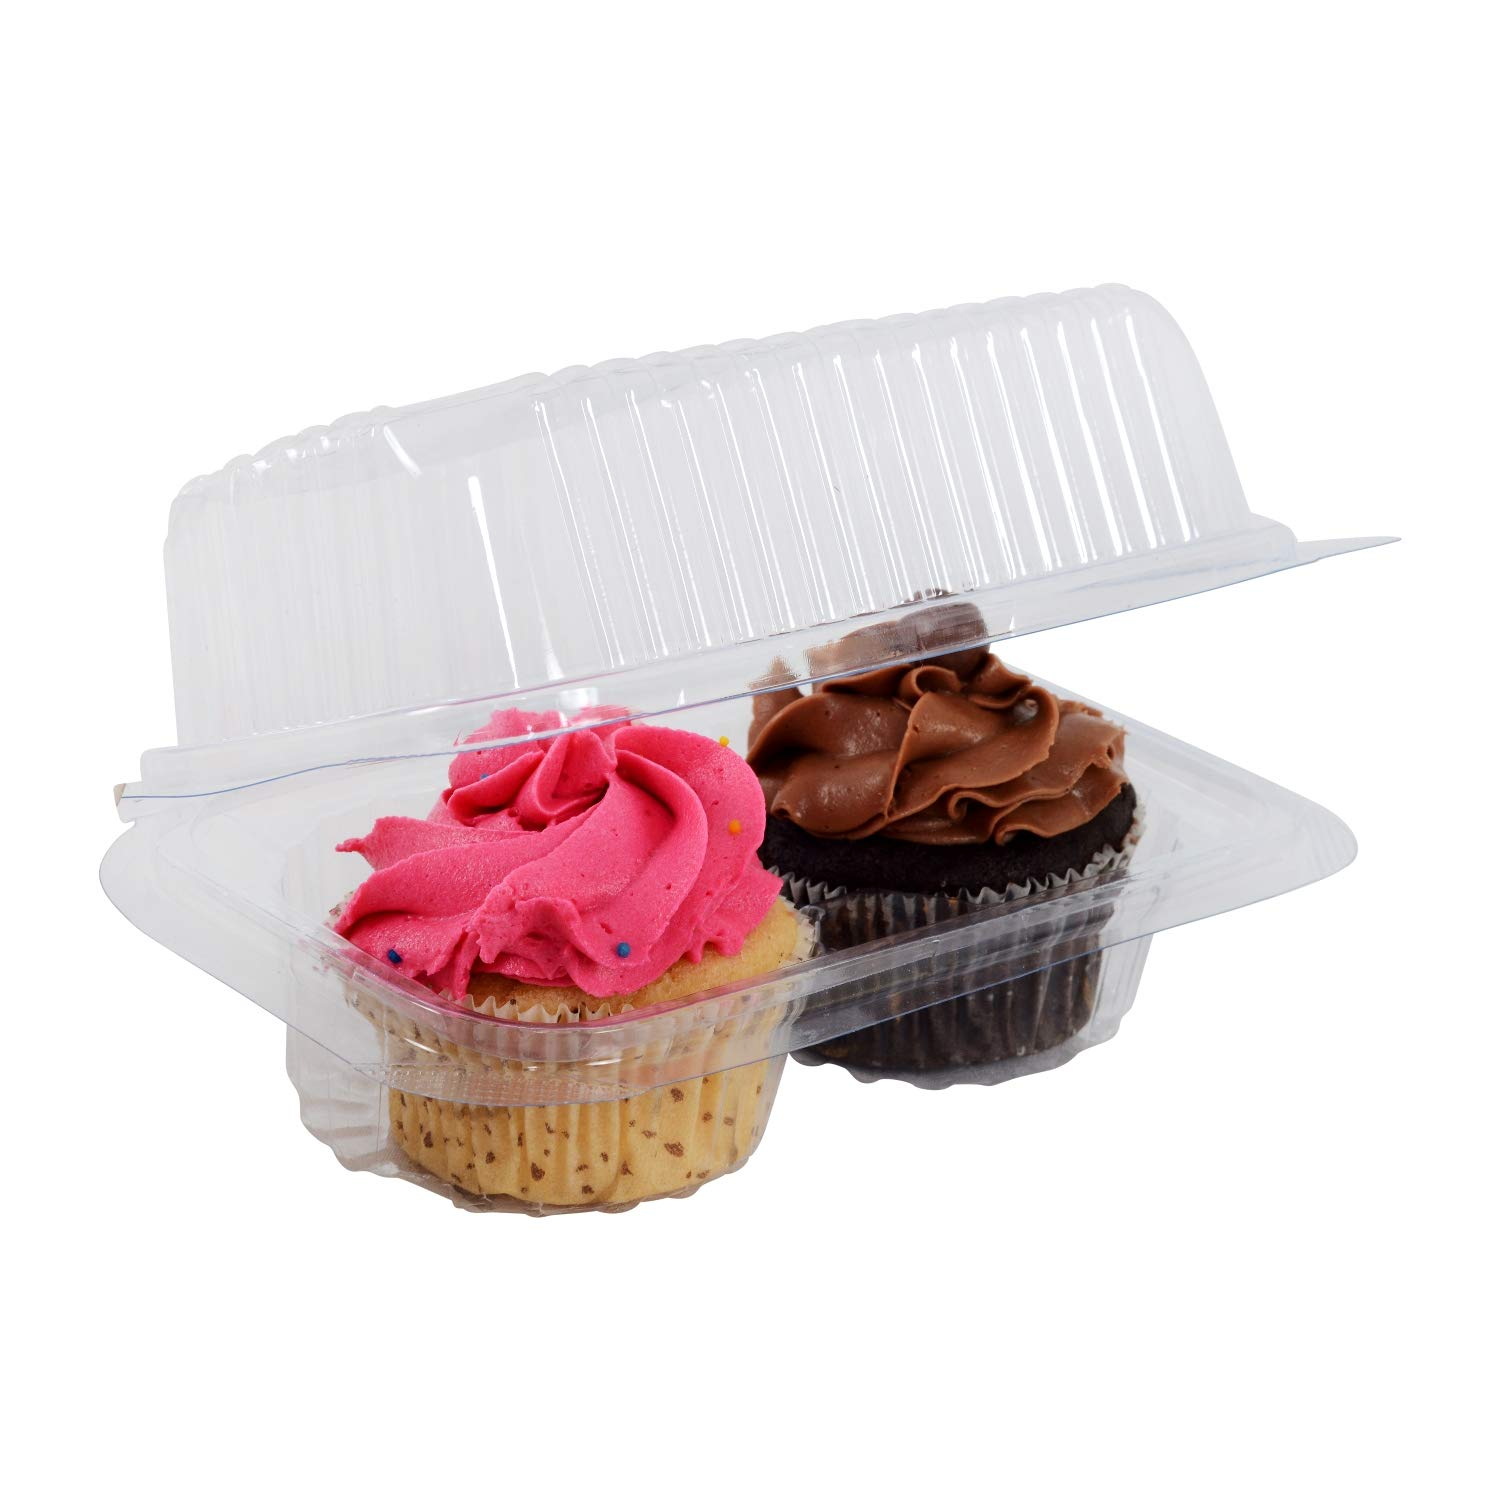 2 High Dome Clear Plastic Cupcake container Muffin holder Cupcake box Party favor box baking tray //25 Pack.AHPB005